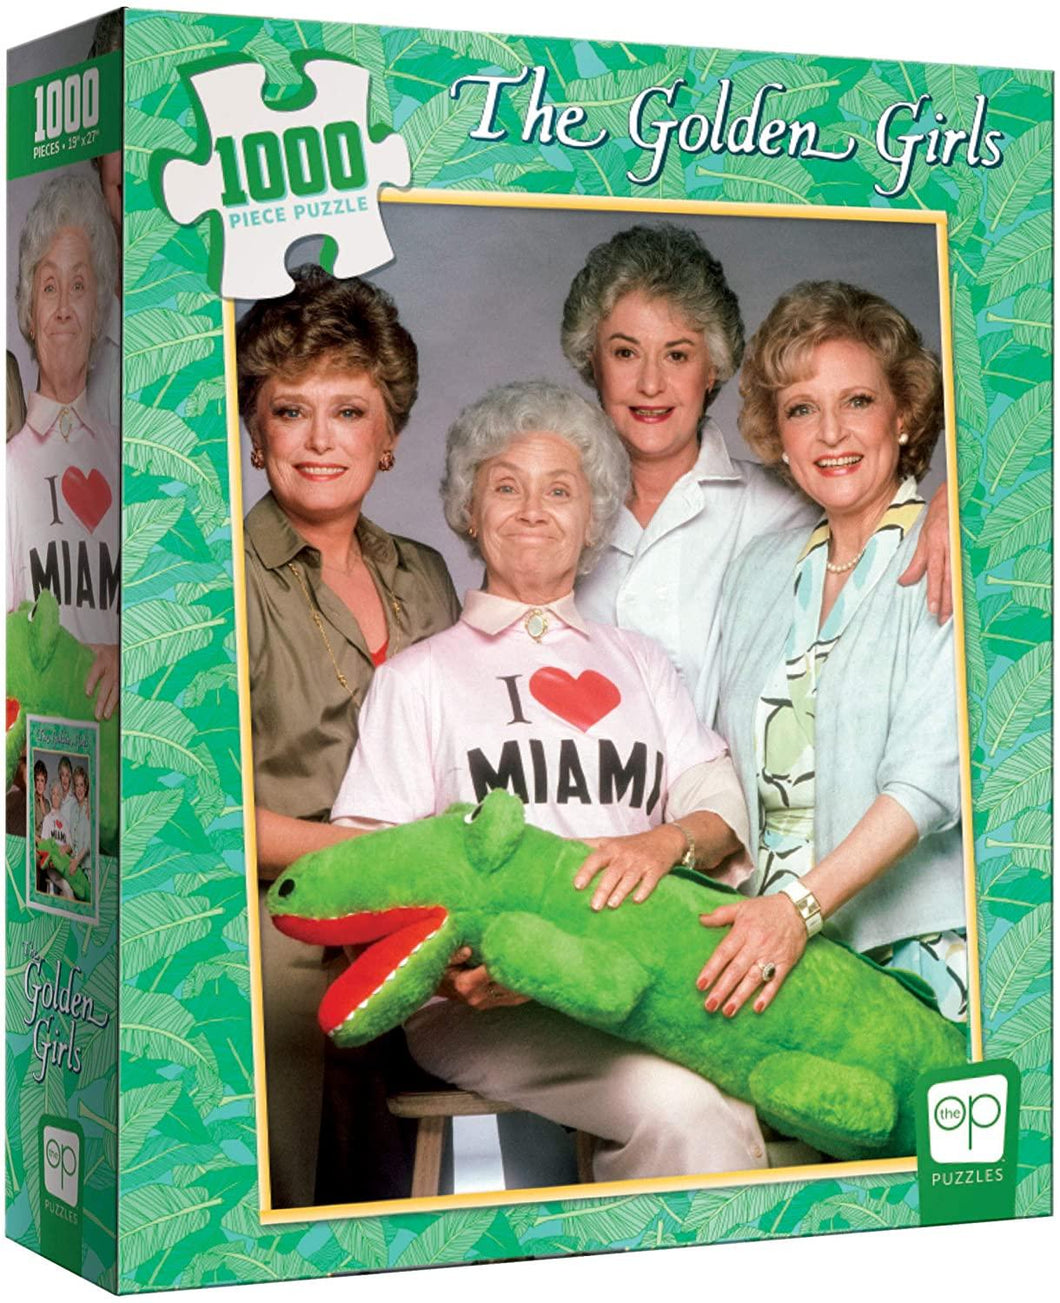 Golden Girls: I Heart Miami - 1000 piece